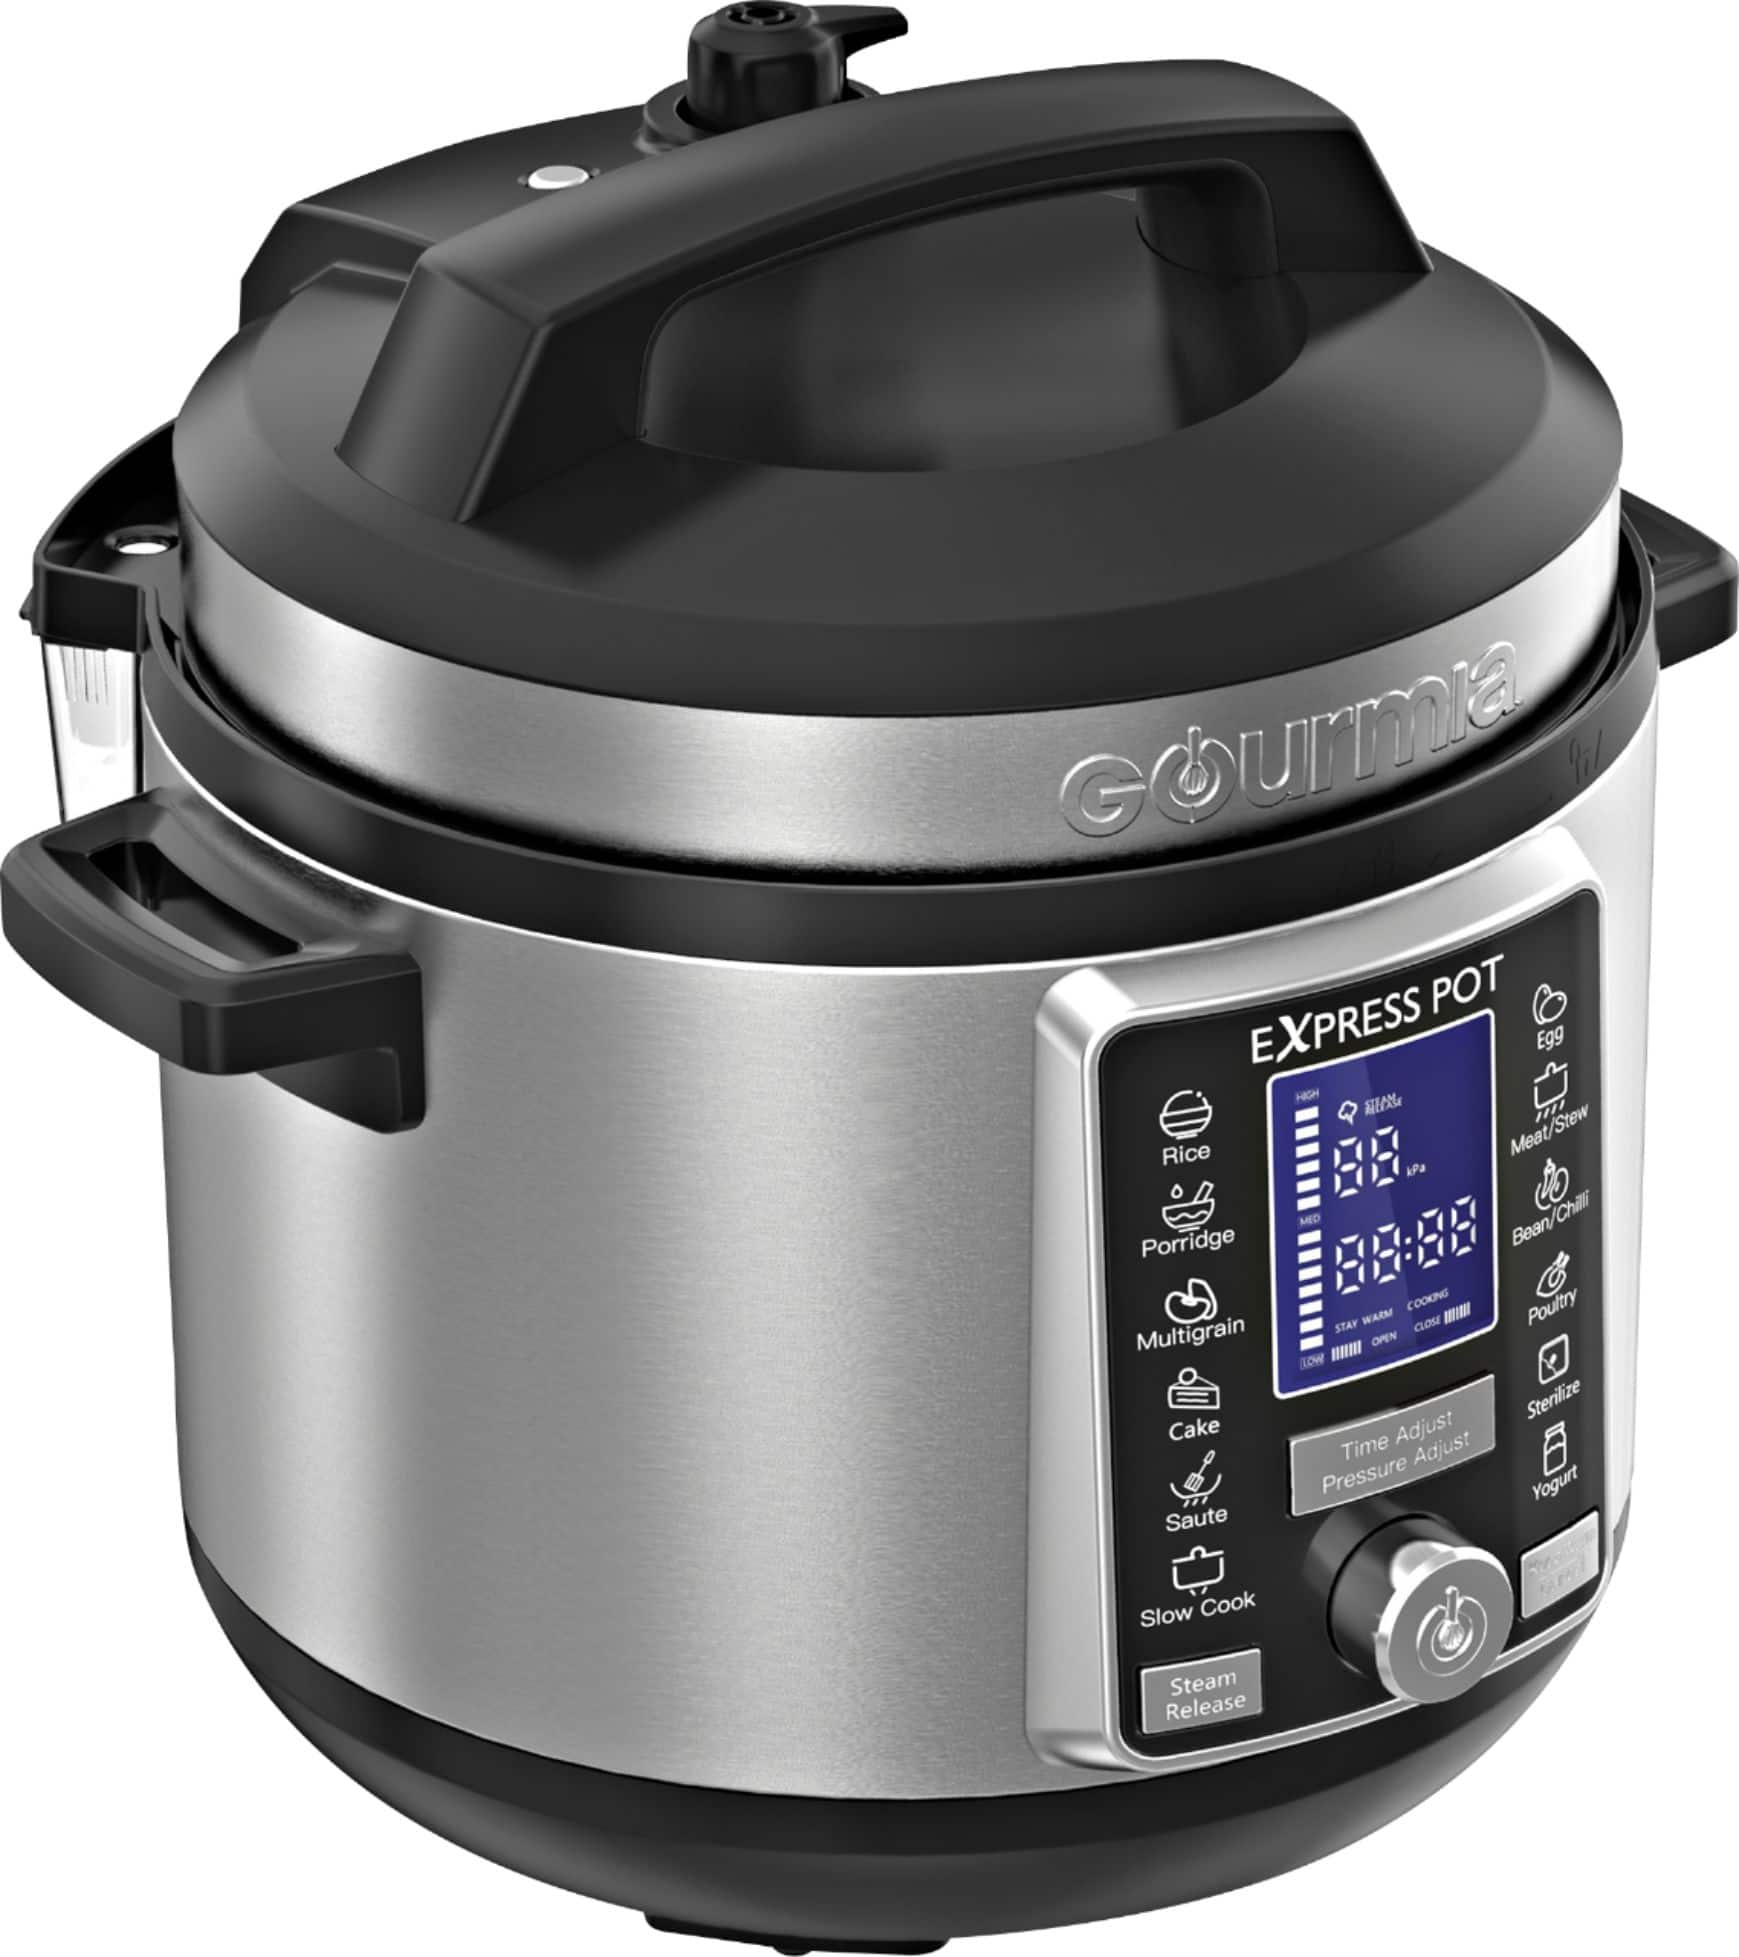 Gourmia 6-Quart Pressure Cooker with Auto Release Stainless Steel GPC965 - Best Buy $50